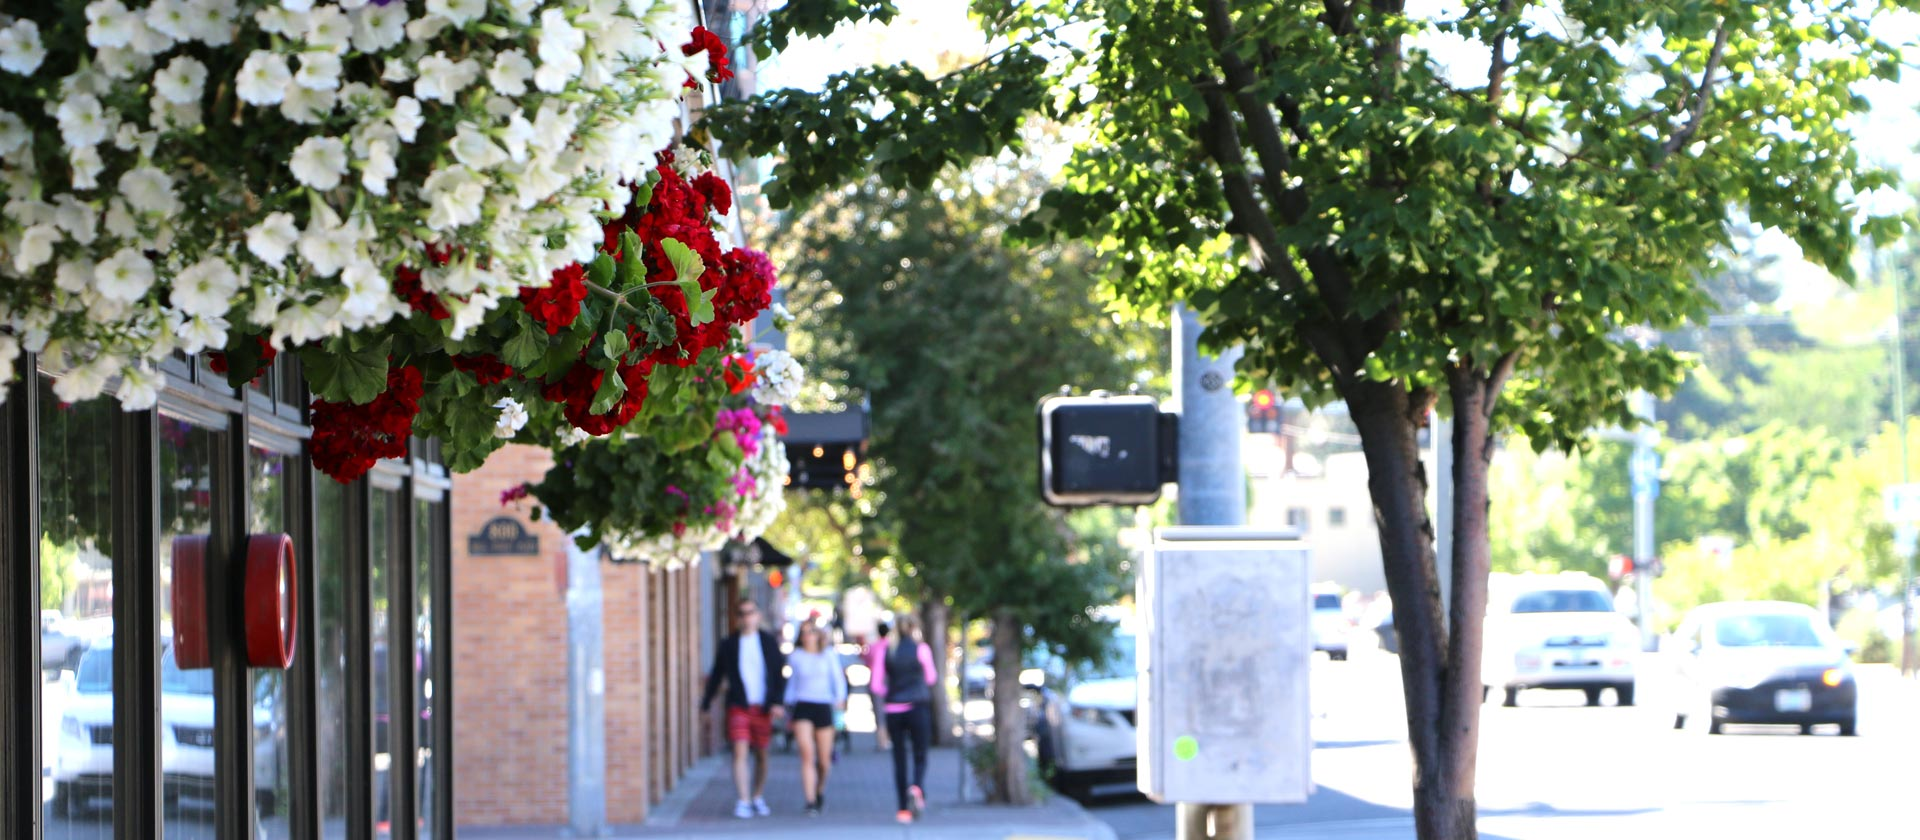 Hanging flower baskets and people walking along Franklin Avenue in Downtown Bend during the summer